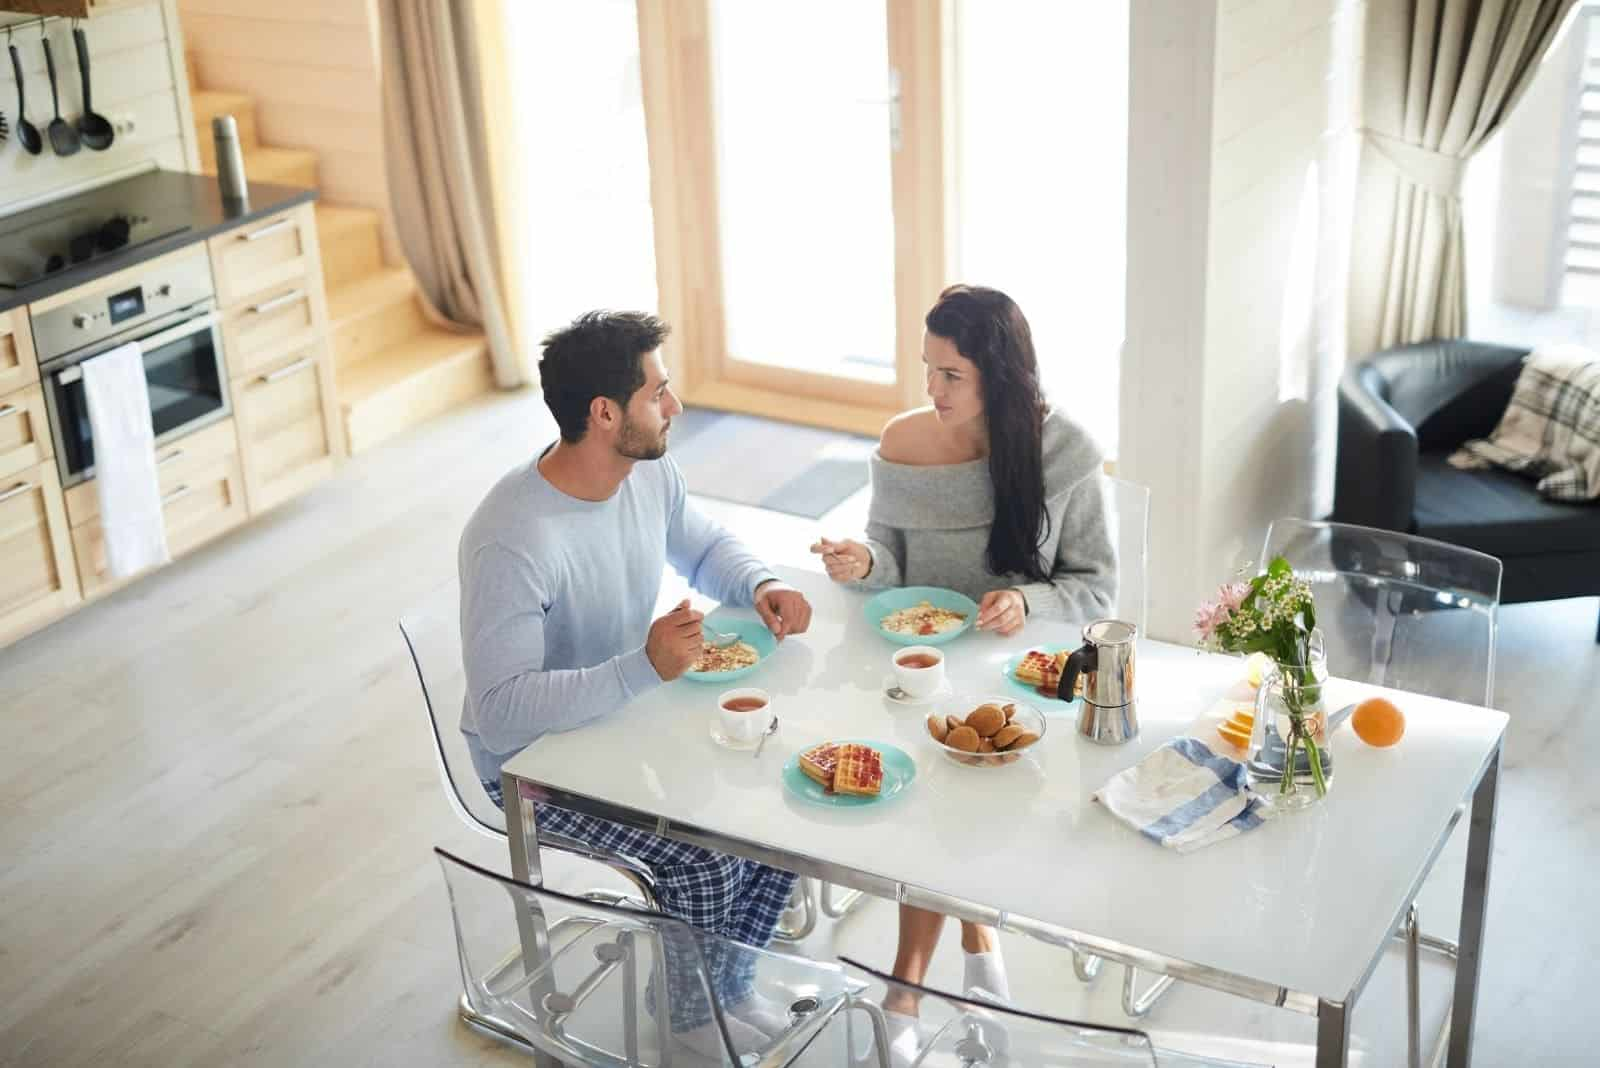 couple taking breakfast by the table in the kitchen and seriously talking